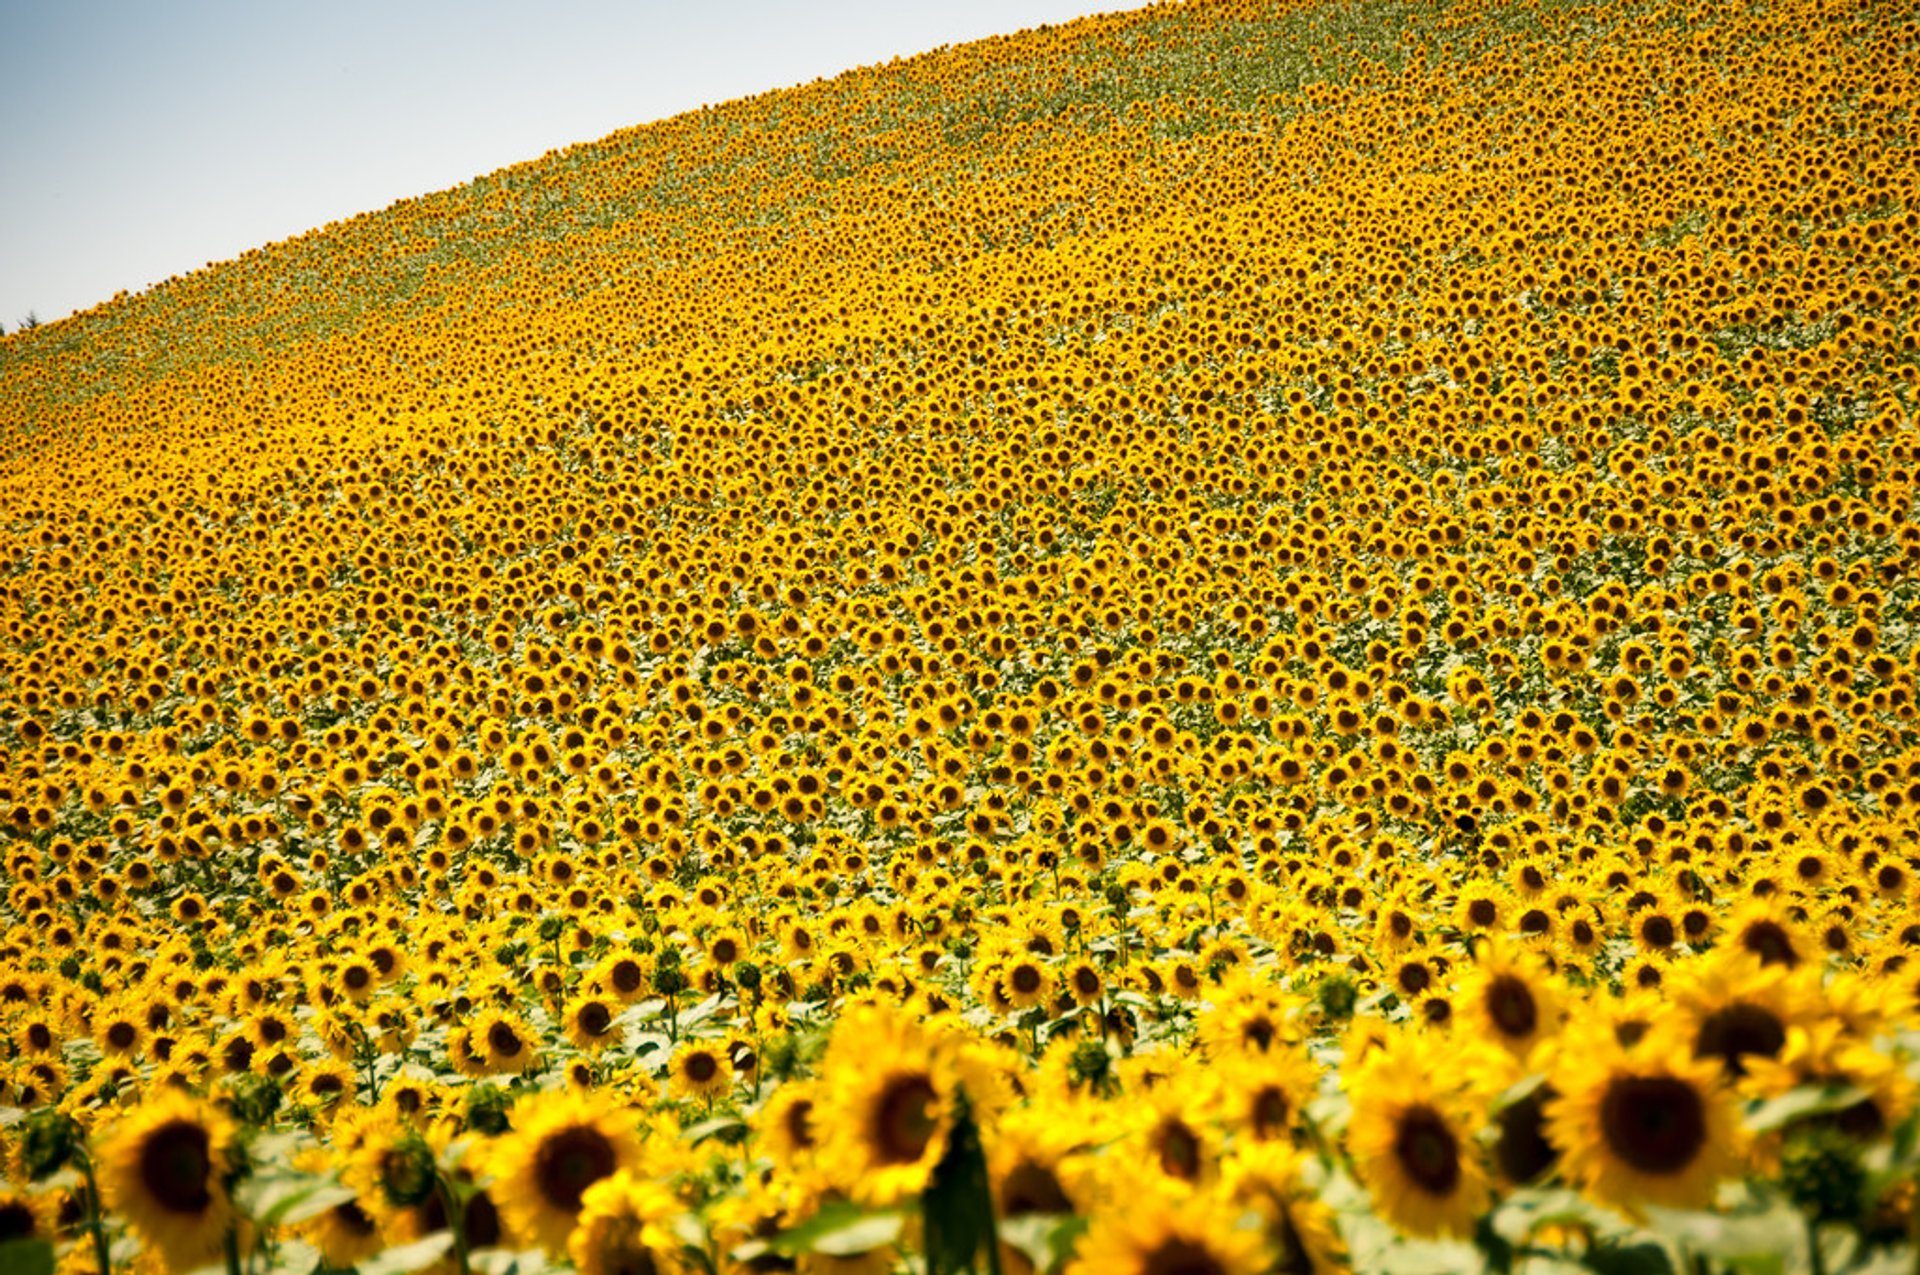 Sunflowers in Gers, Midi-Pyrénées, France 2020